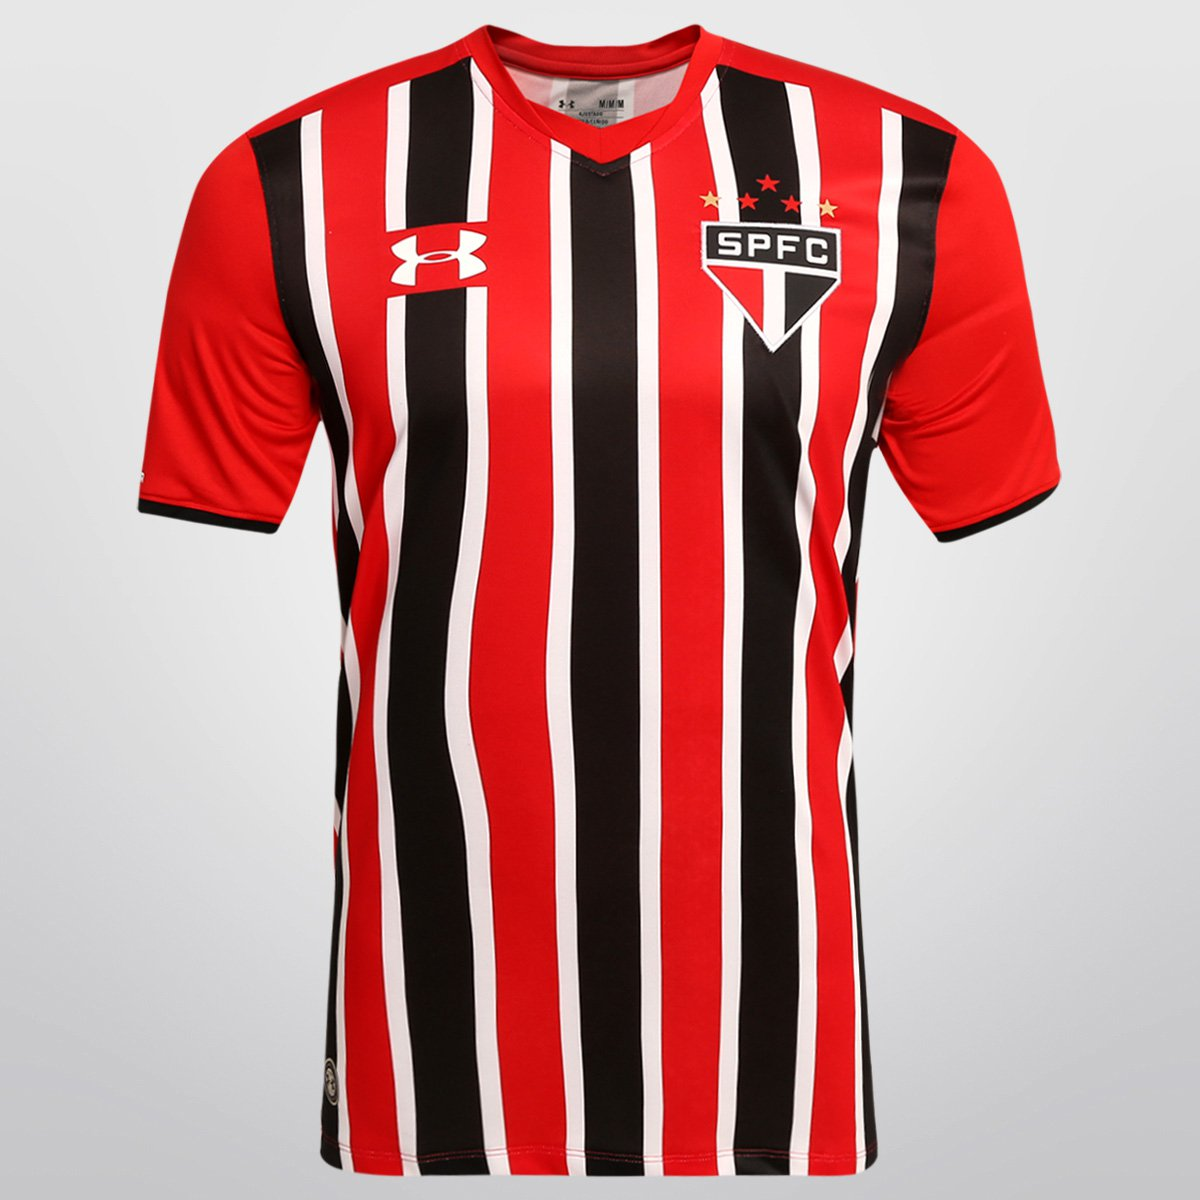 0df3db183f Camisa São Paulo II 15/16 s/nº Torcedor Under Armour Masculina | Netshoes